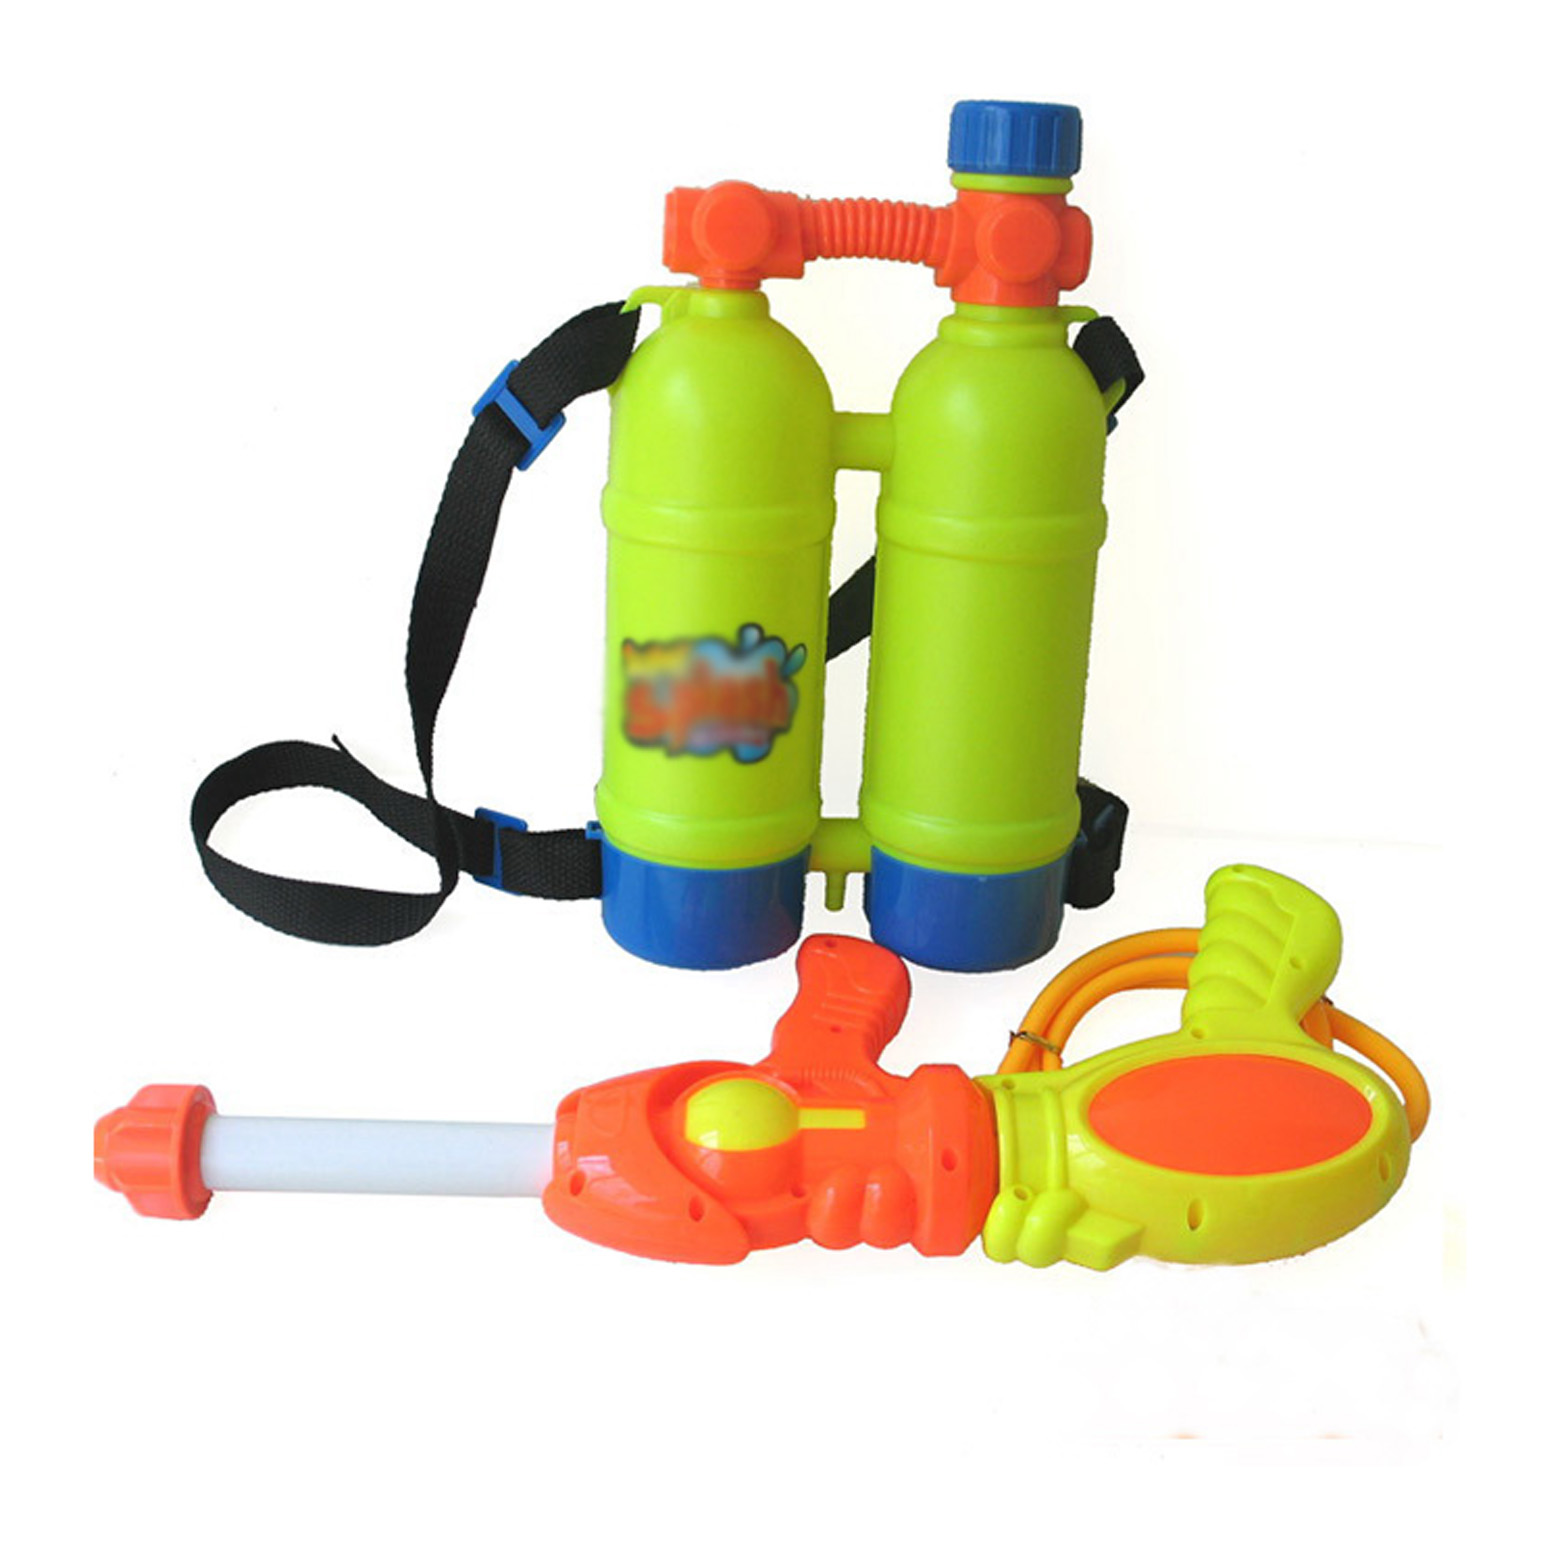 backpack squirt gun Fill the backpack with water and then  pump the handle to squirt three jets of water forward.